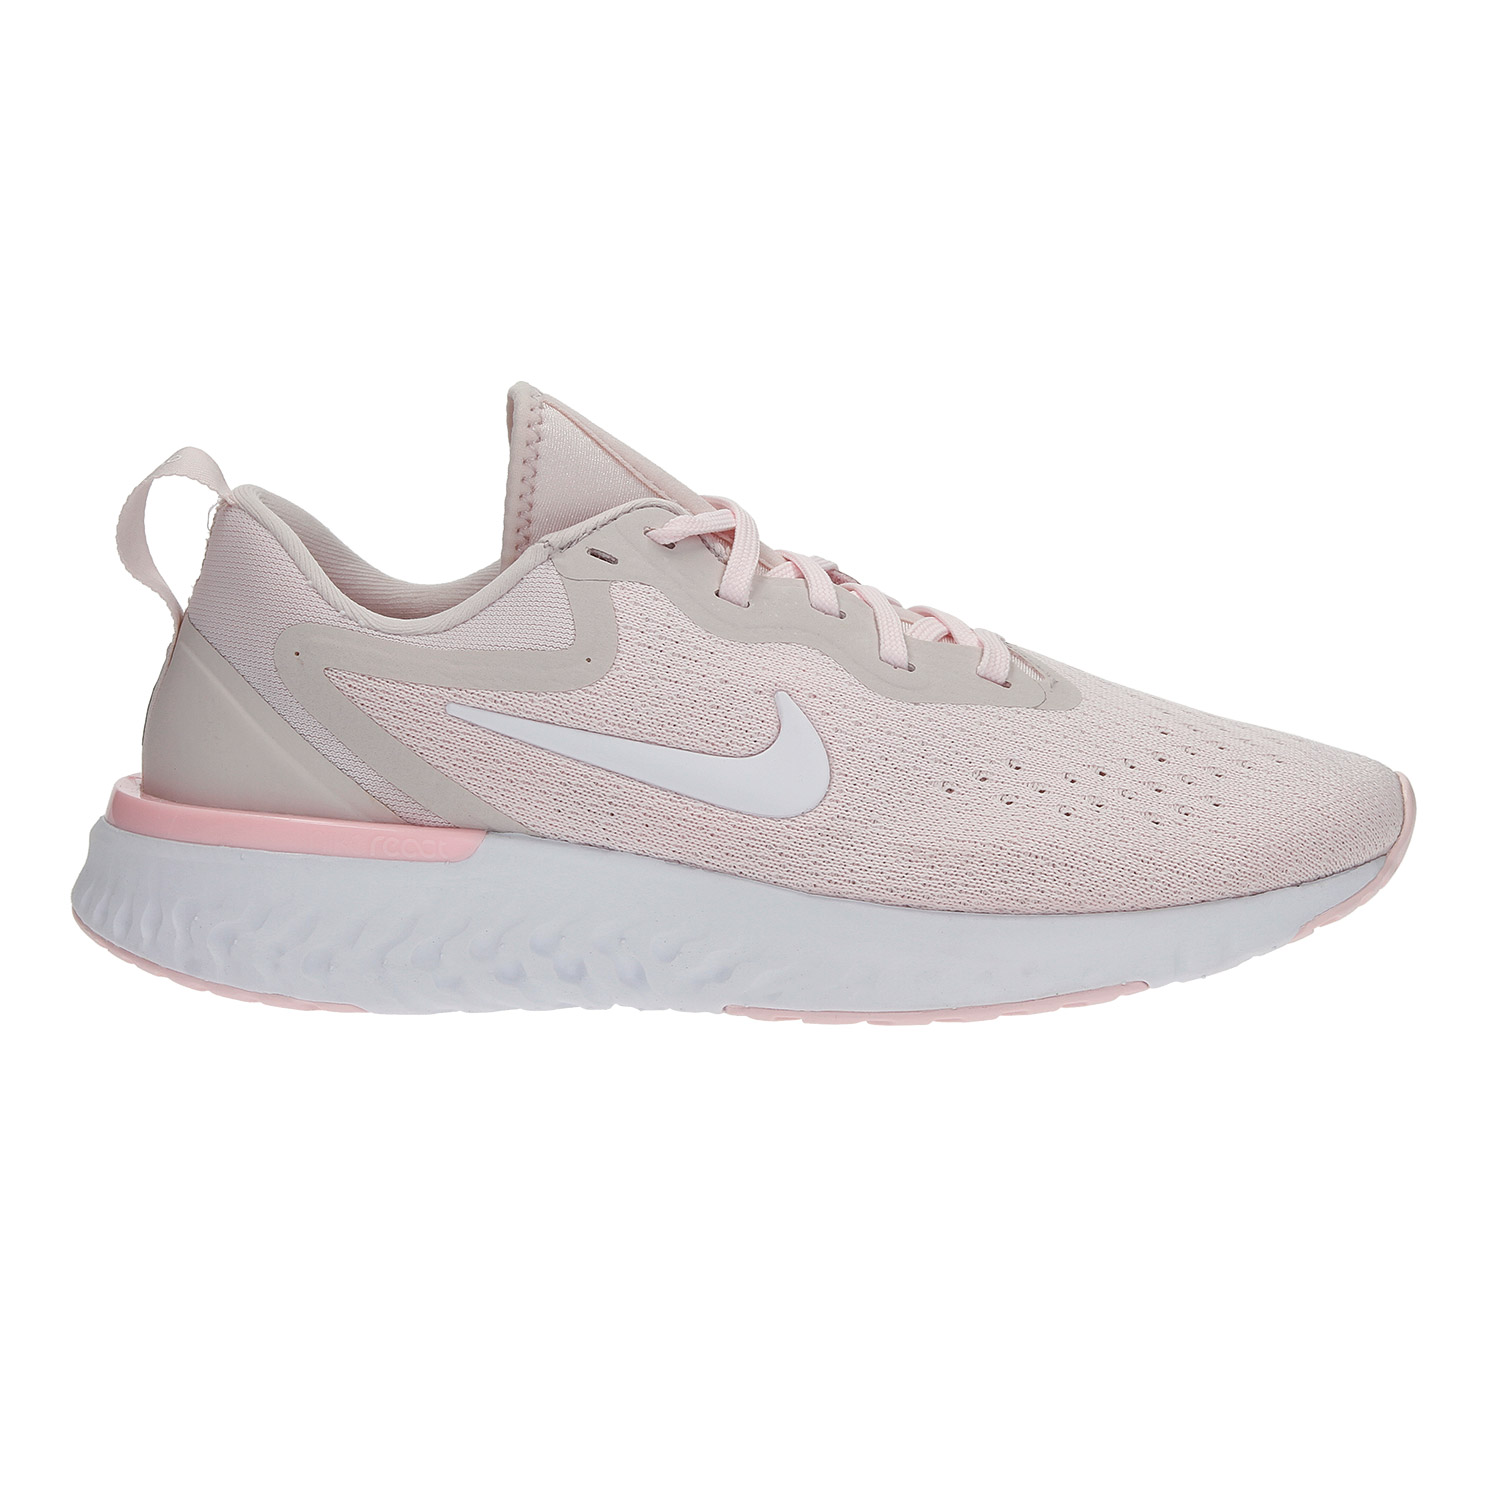 4ce13a3cd8a59e Nike Odyssey React Women s Running Shoes